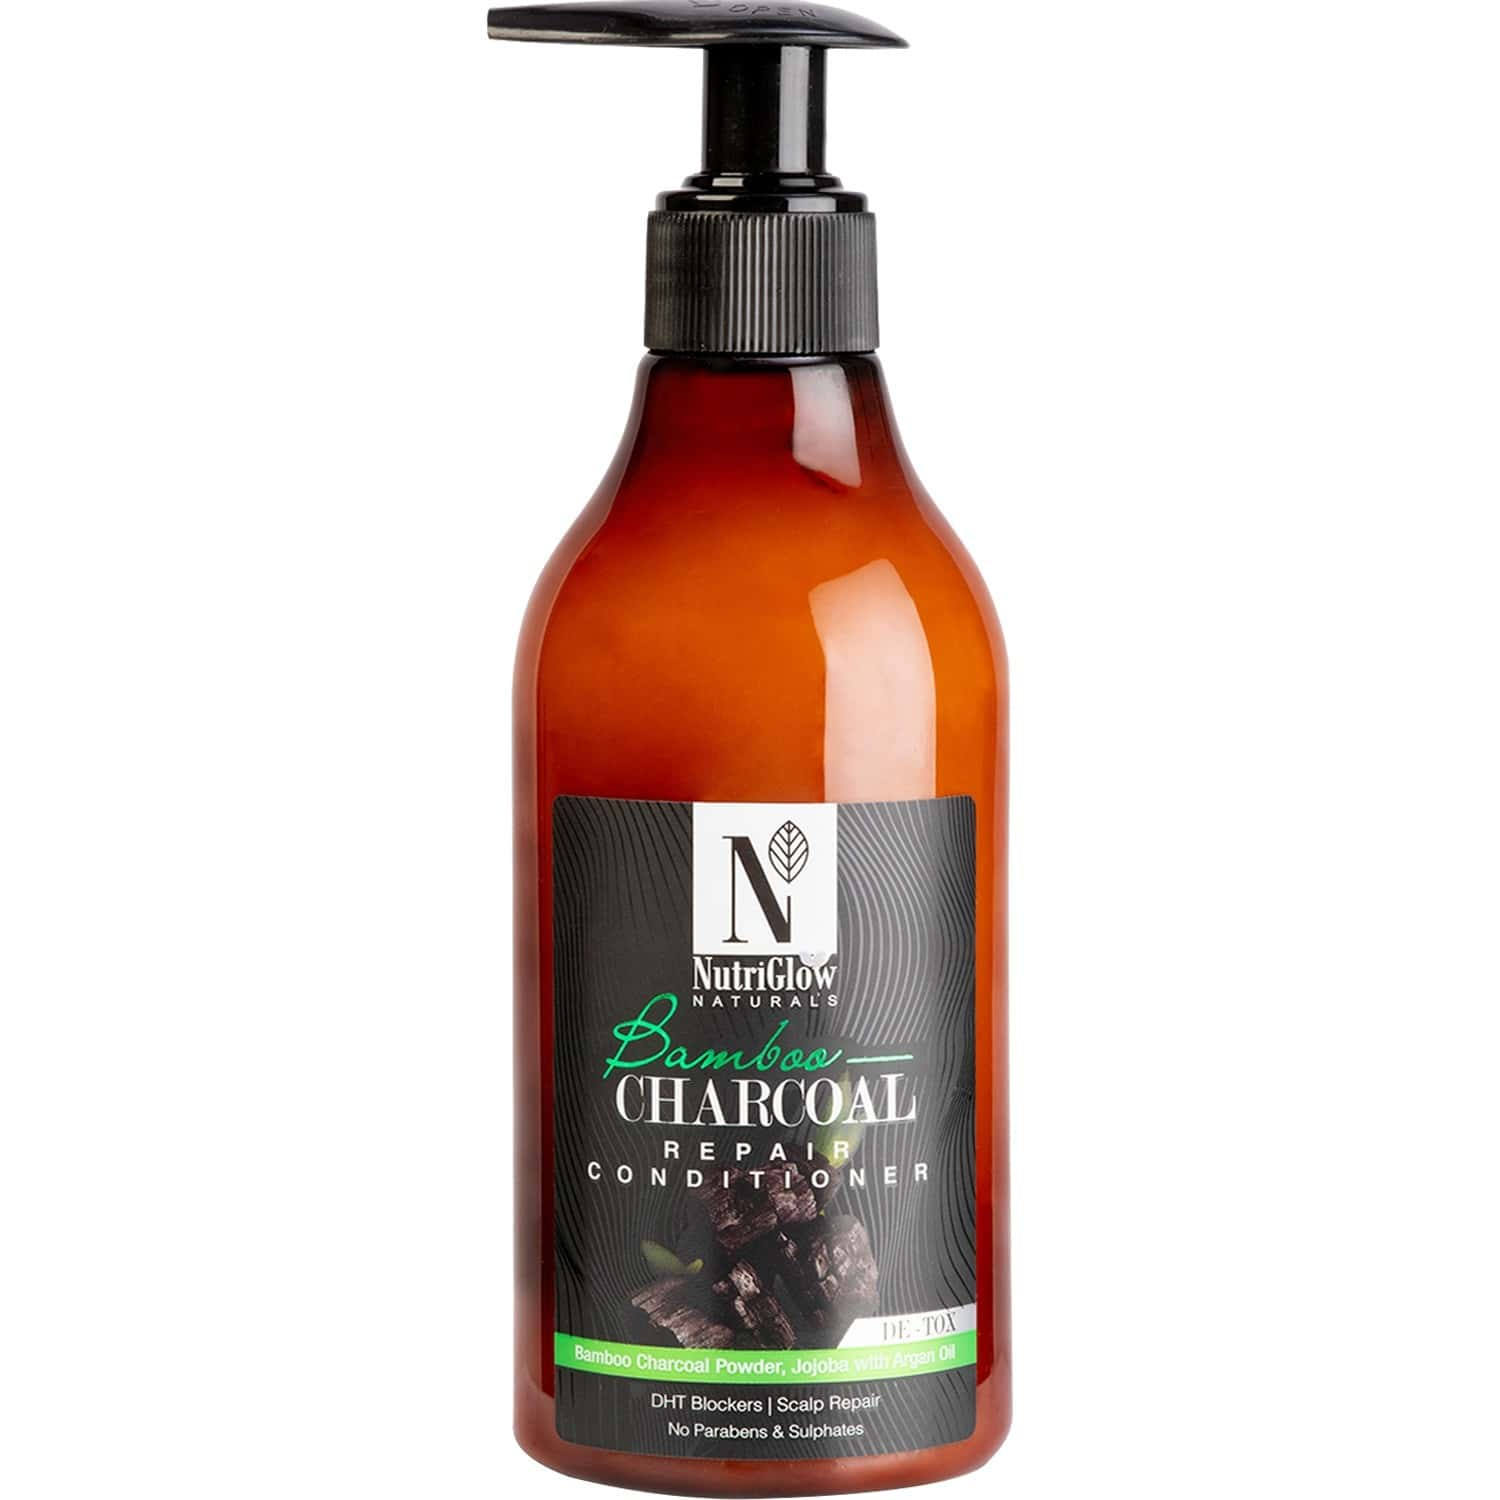 Nutriglow Natural's Bamboo Charcoal Conditioner /with Natural Source Ingredients/damaged Hair 300 Ml